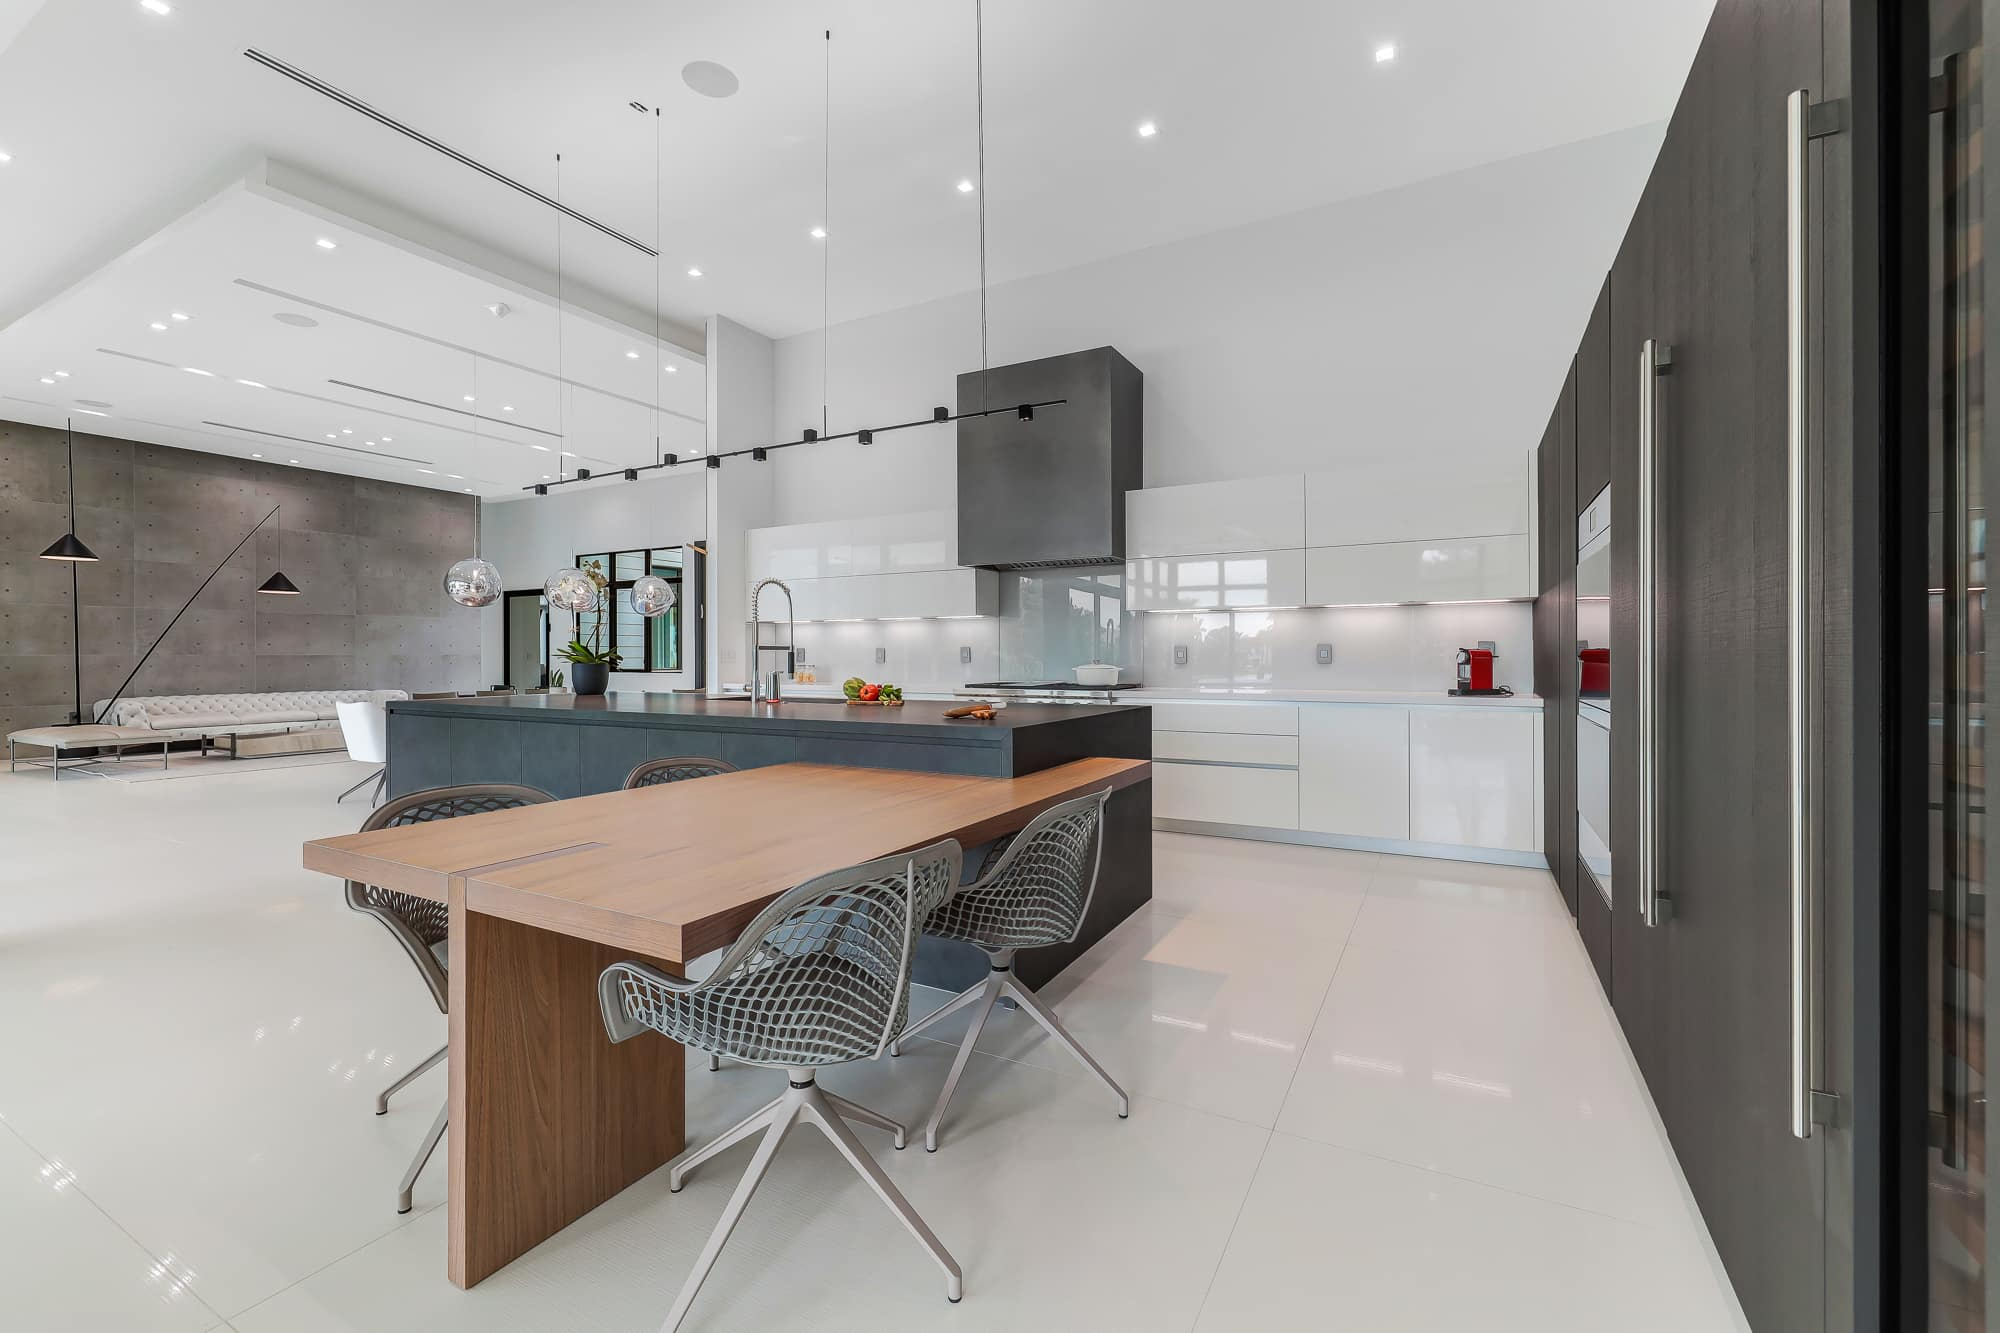 linea studio Flamingo Rd-10 kitchen